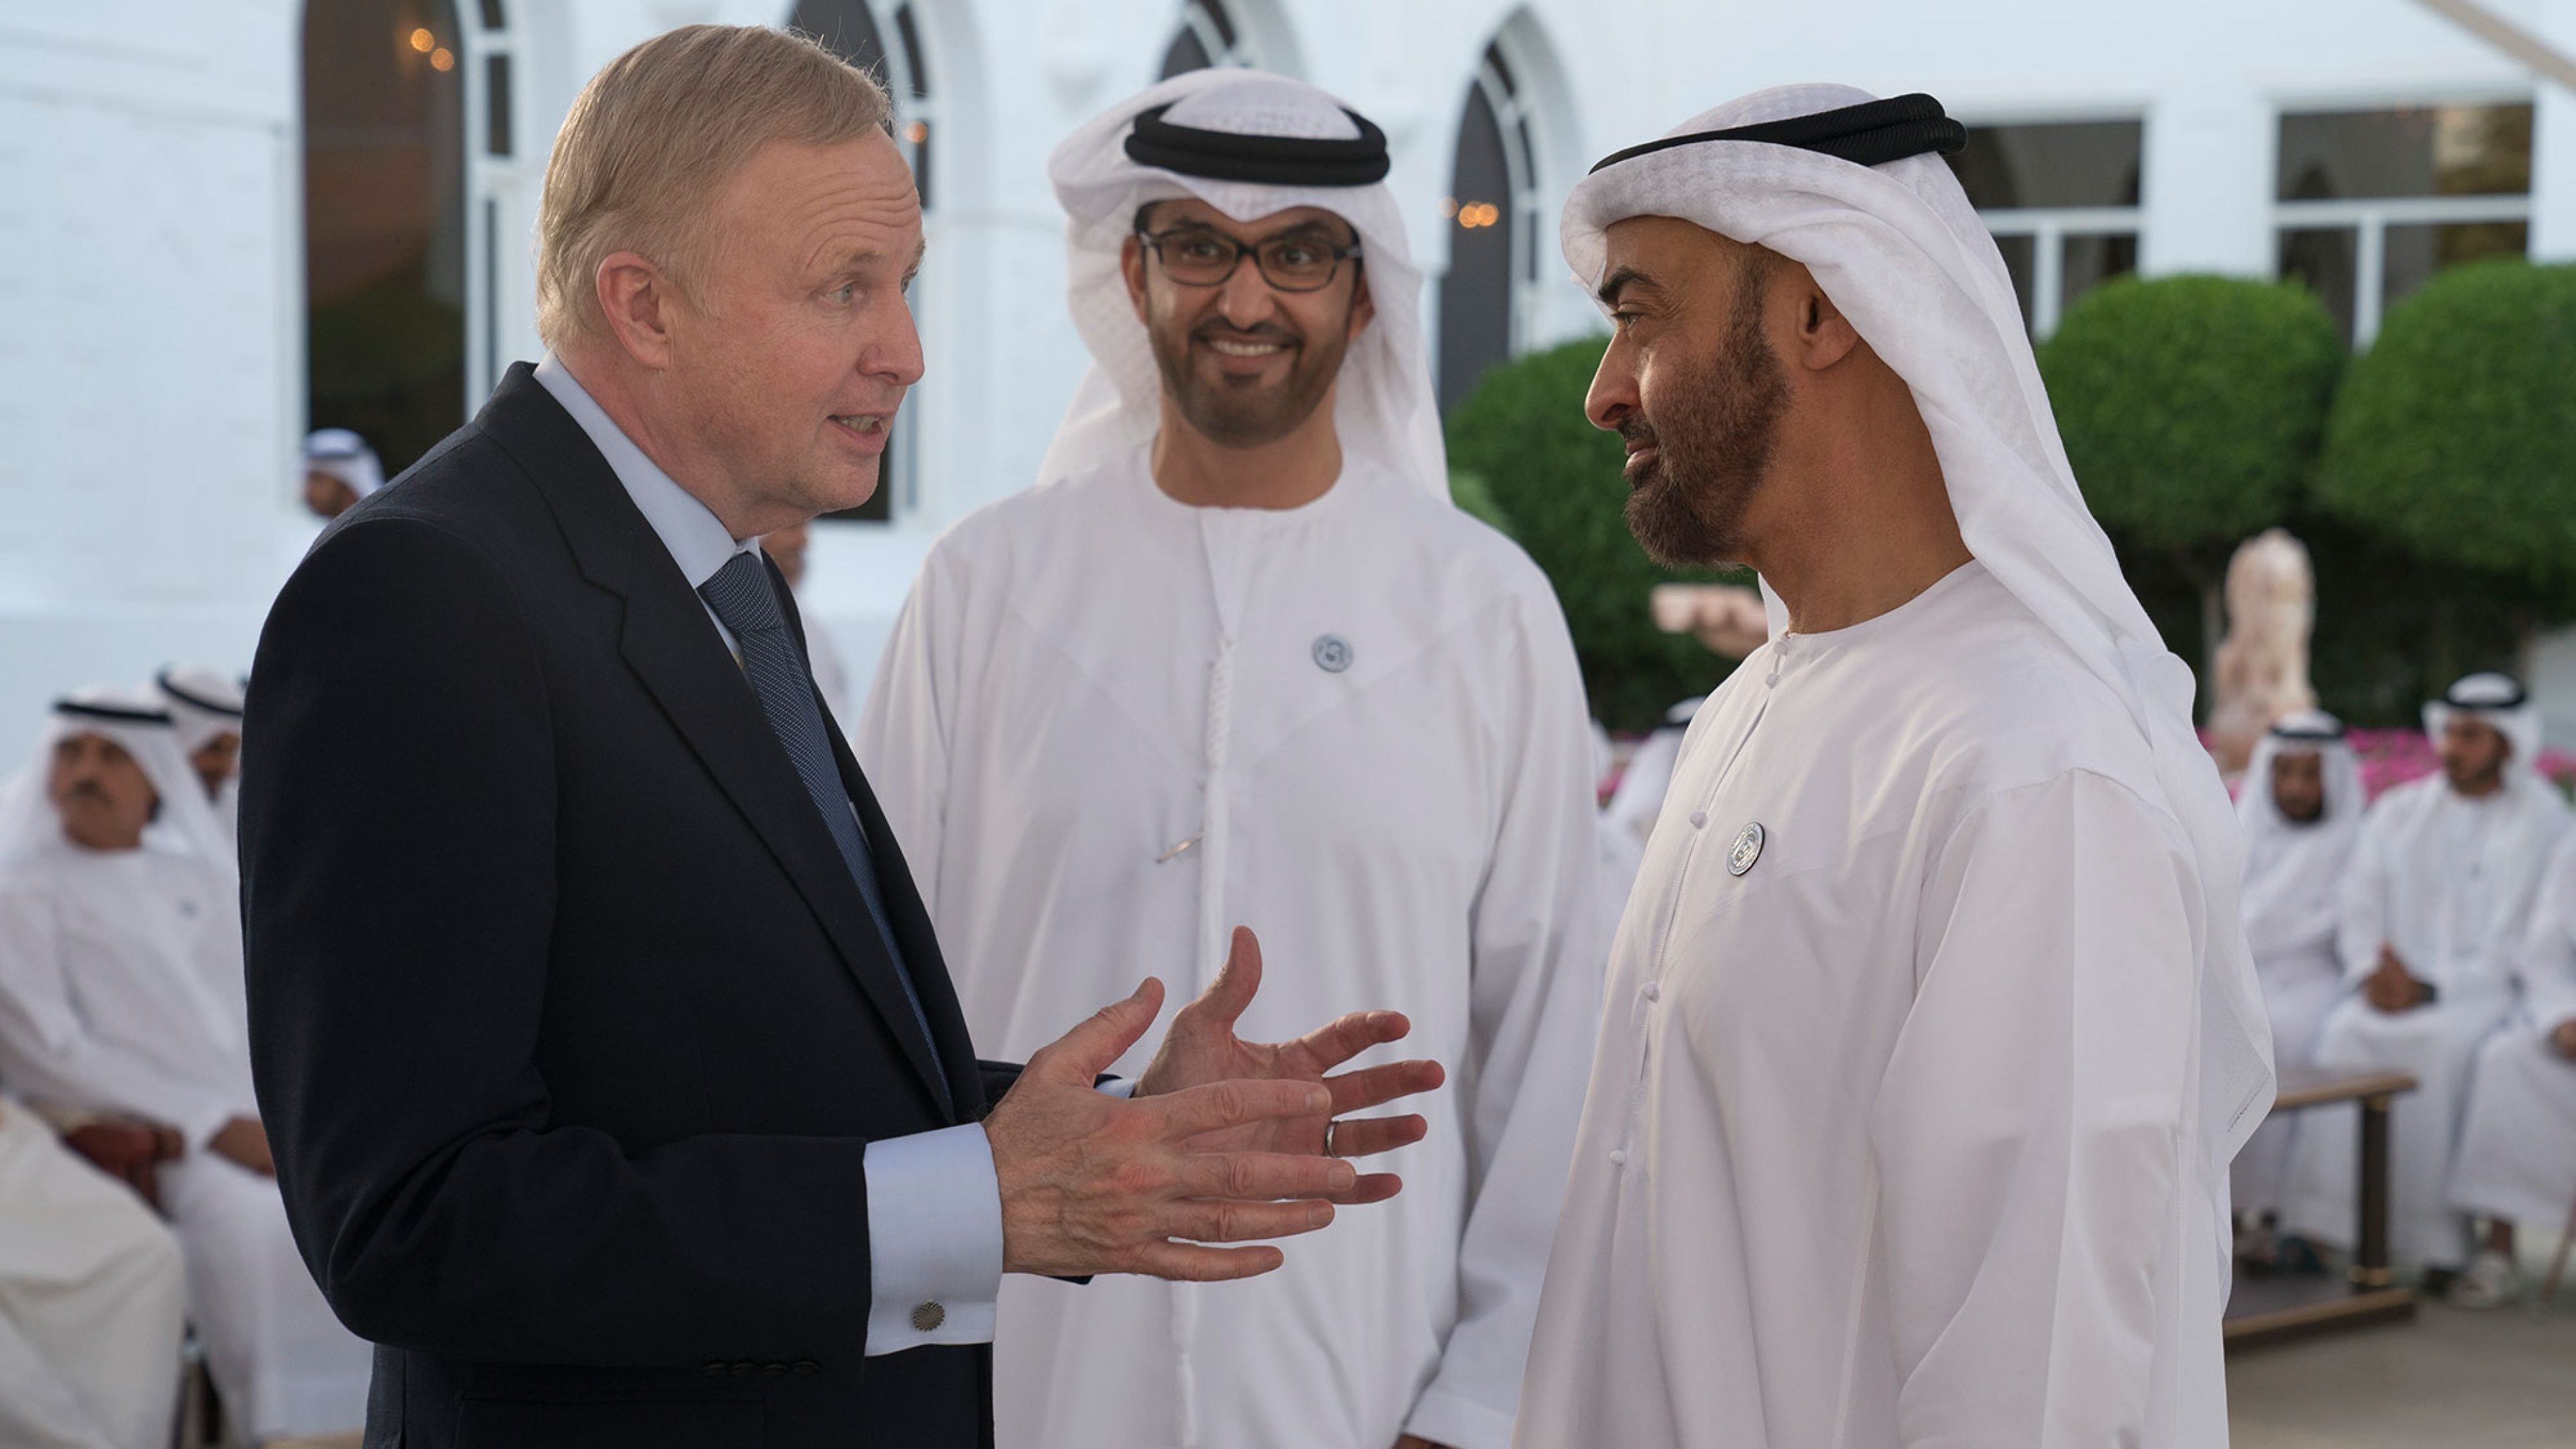 Dudley met with ADNOC CEO Dr Sultan Ahmed Al Jaber (middle) and His Highness Sheikh Mohammed bin Zayed bin Sultan Al-Nahyan, Crown Prince of Abu Dhabi (right)